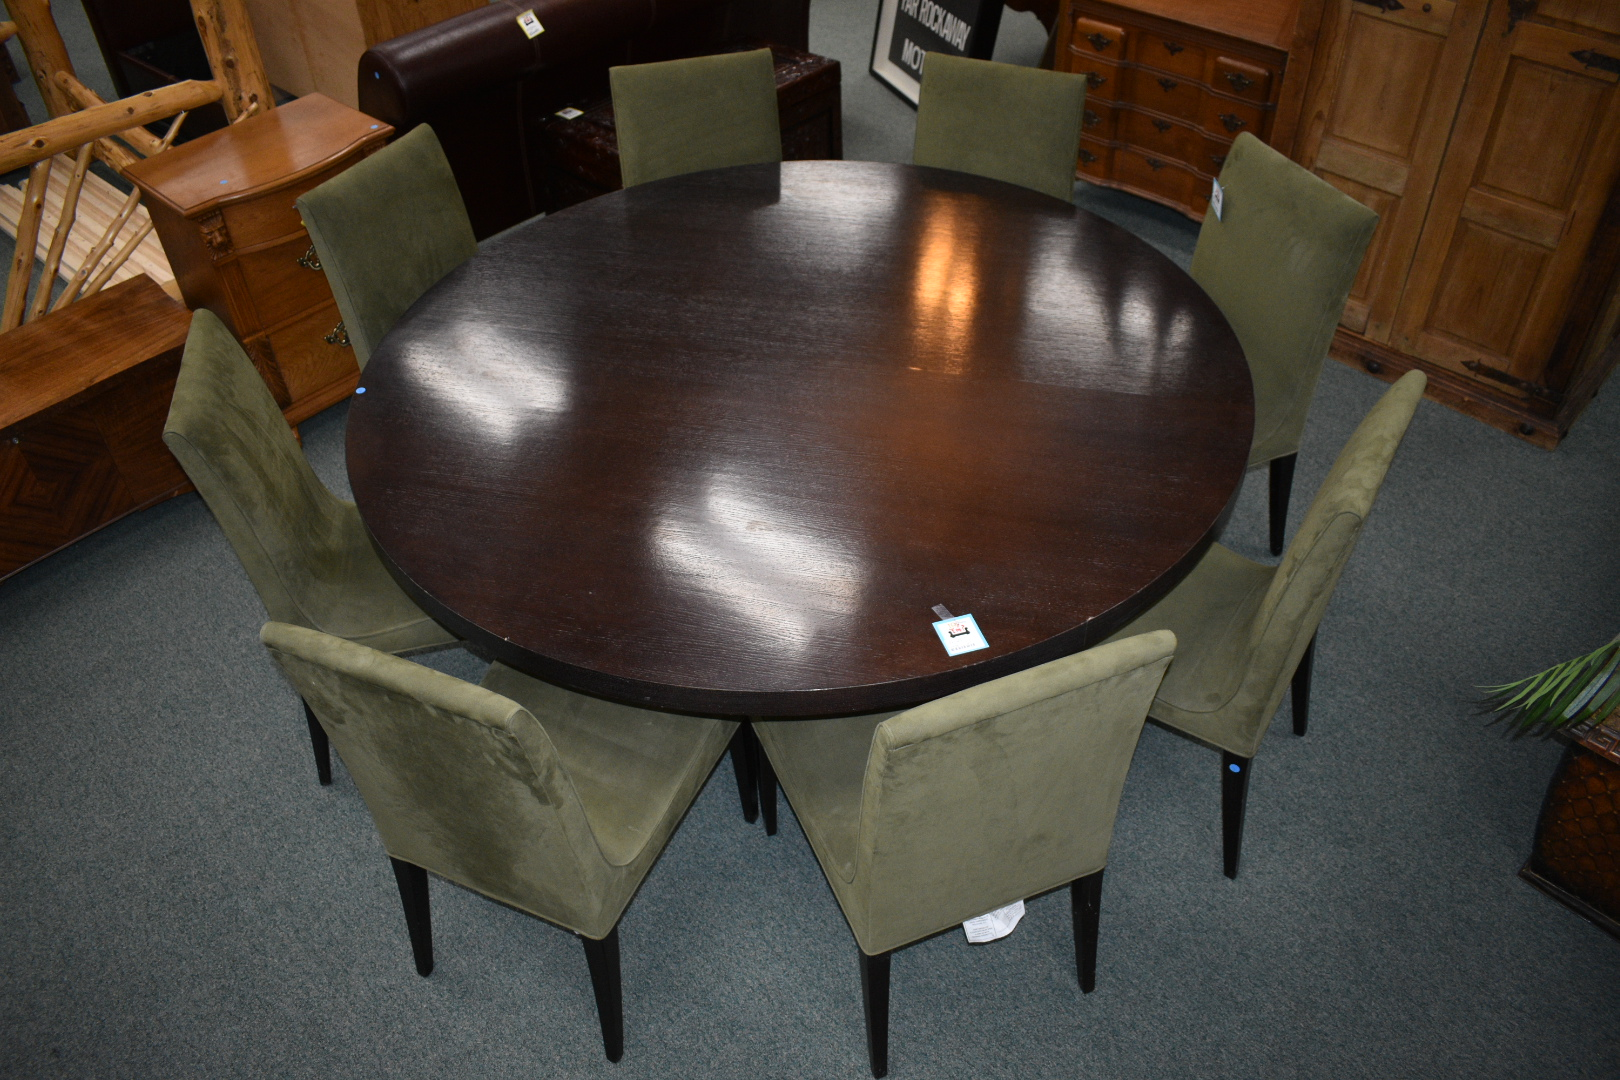 Round Table With A Pedestal Base. Fits 6 8 Chairs Comfortably. Minor Water